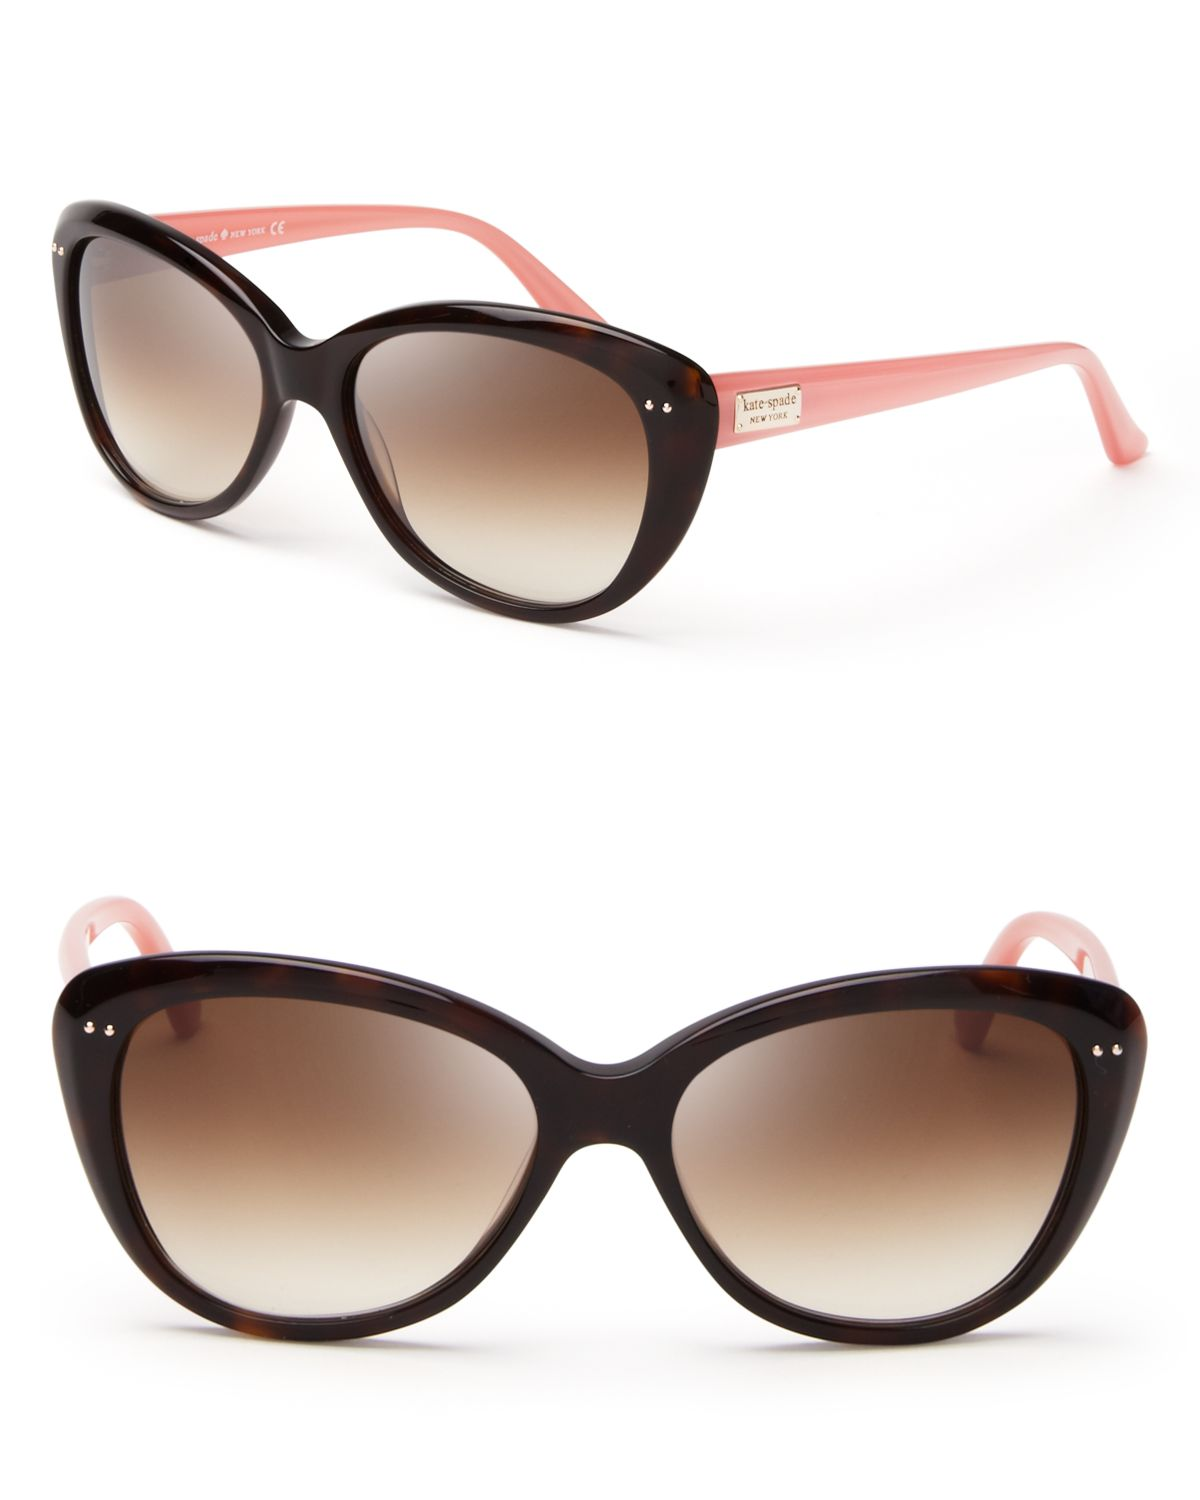 Kate Spade Cat Eye Sunglasses  kate spade new york angelique mod cateye sunglasses in pink lyst